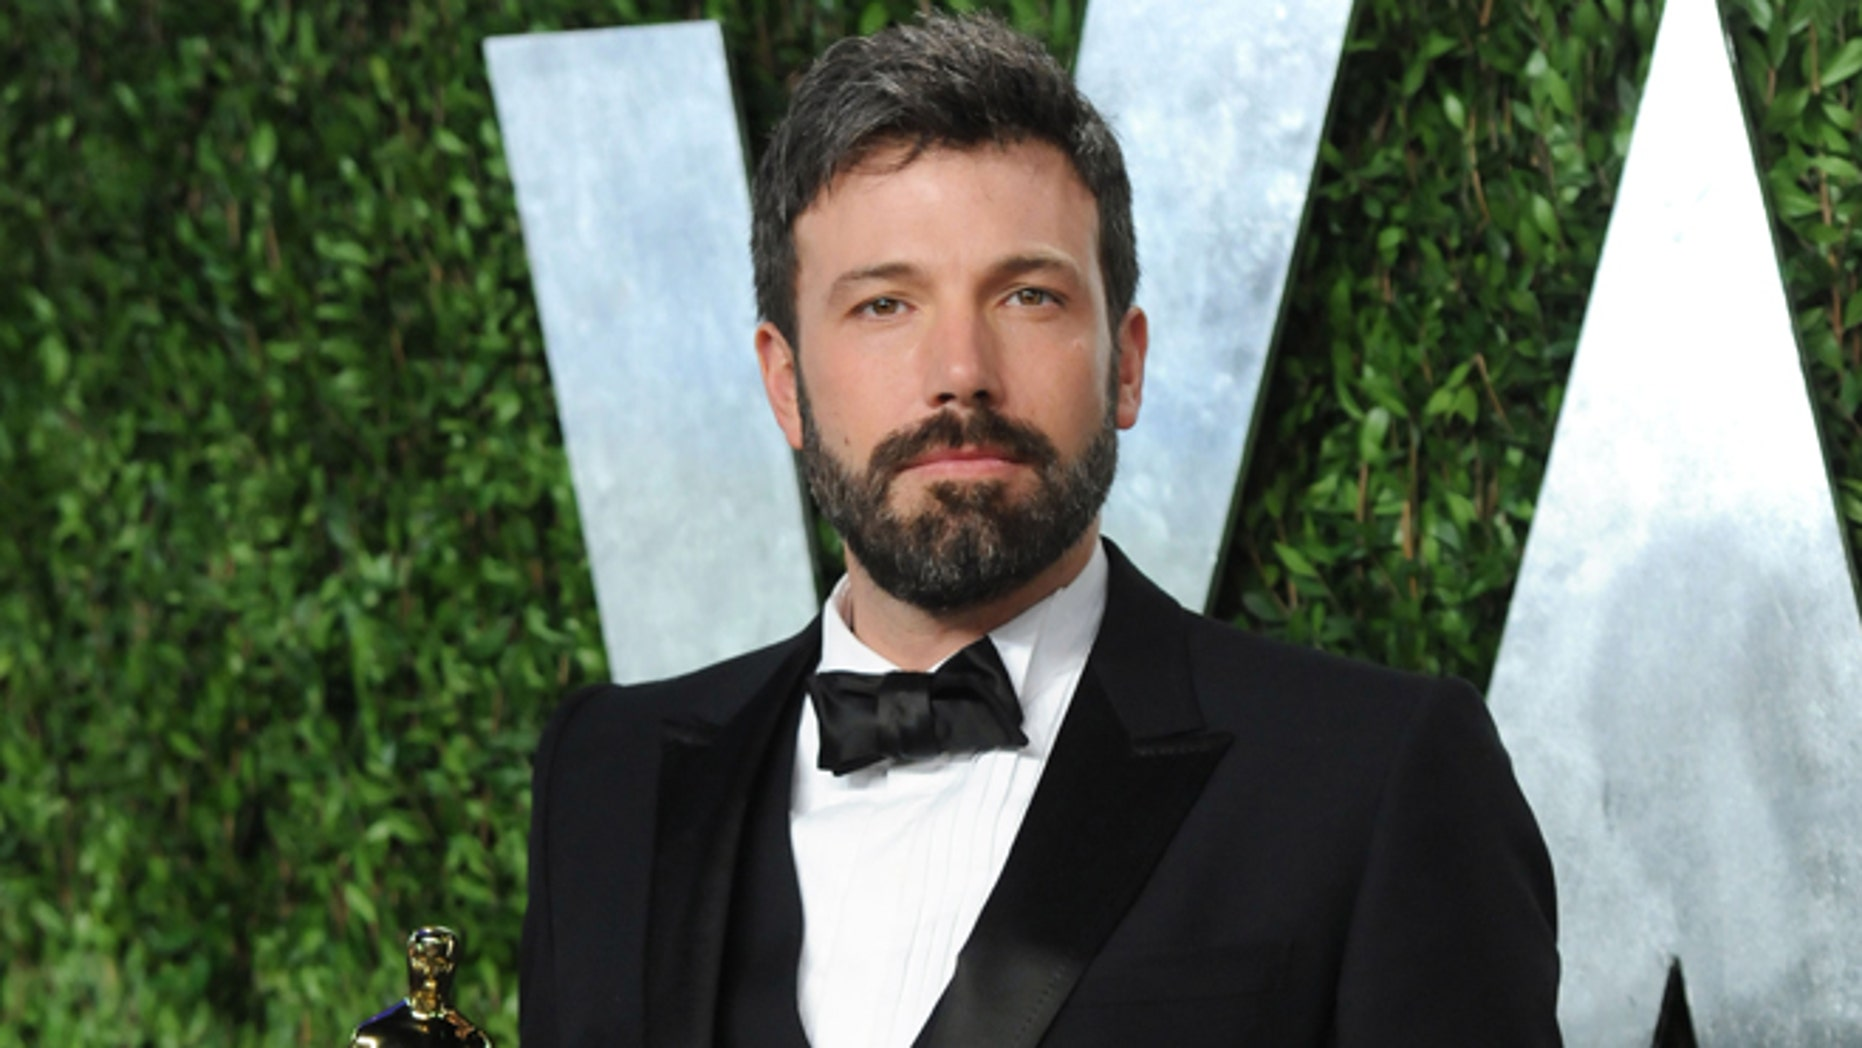 Feb. 24, 2013: Actor/director Ben Affleck arrives at the 2013 Vanity Fair Oscars Viewing and After Party, at the Sunset Plaza Hotel in West Hollywood, Calif.